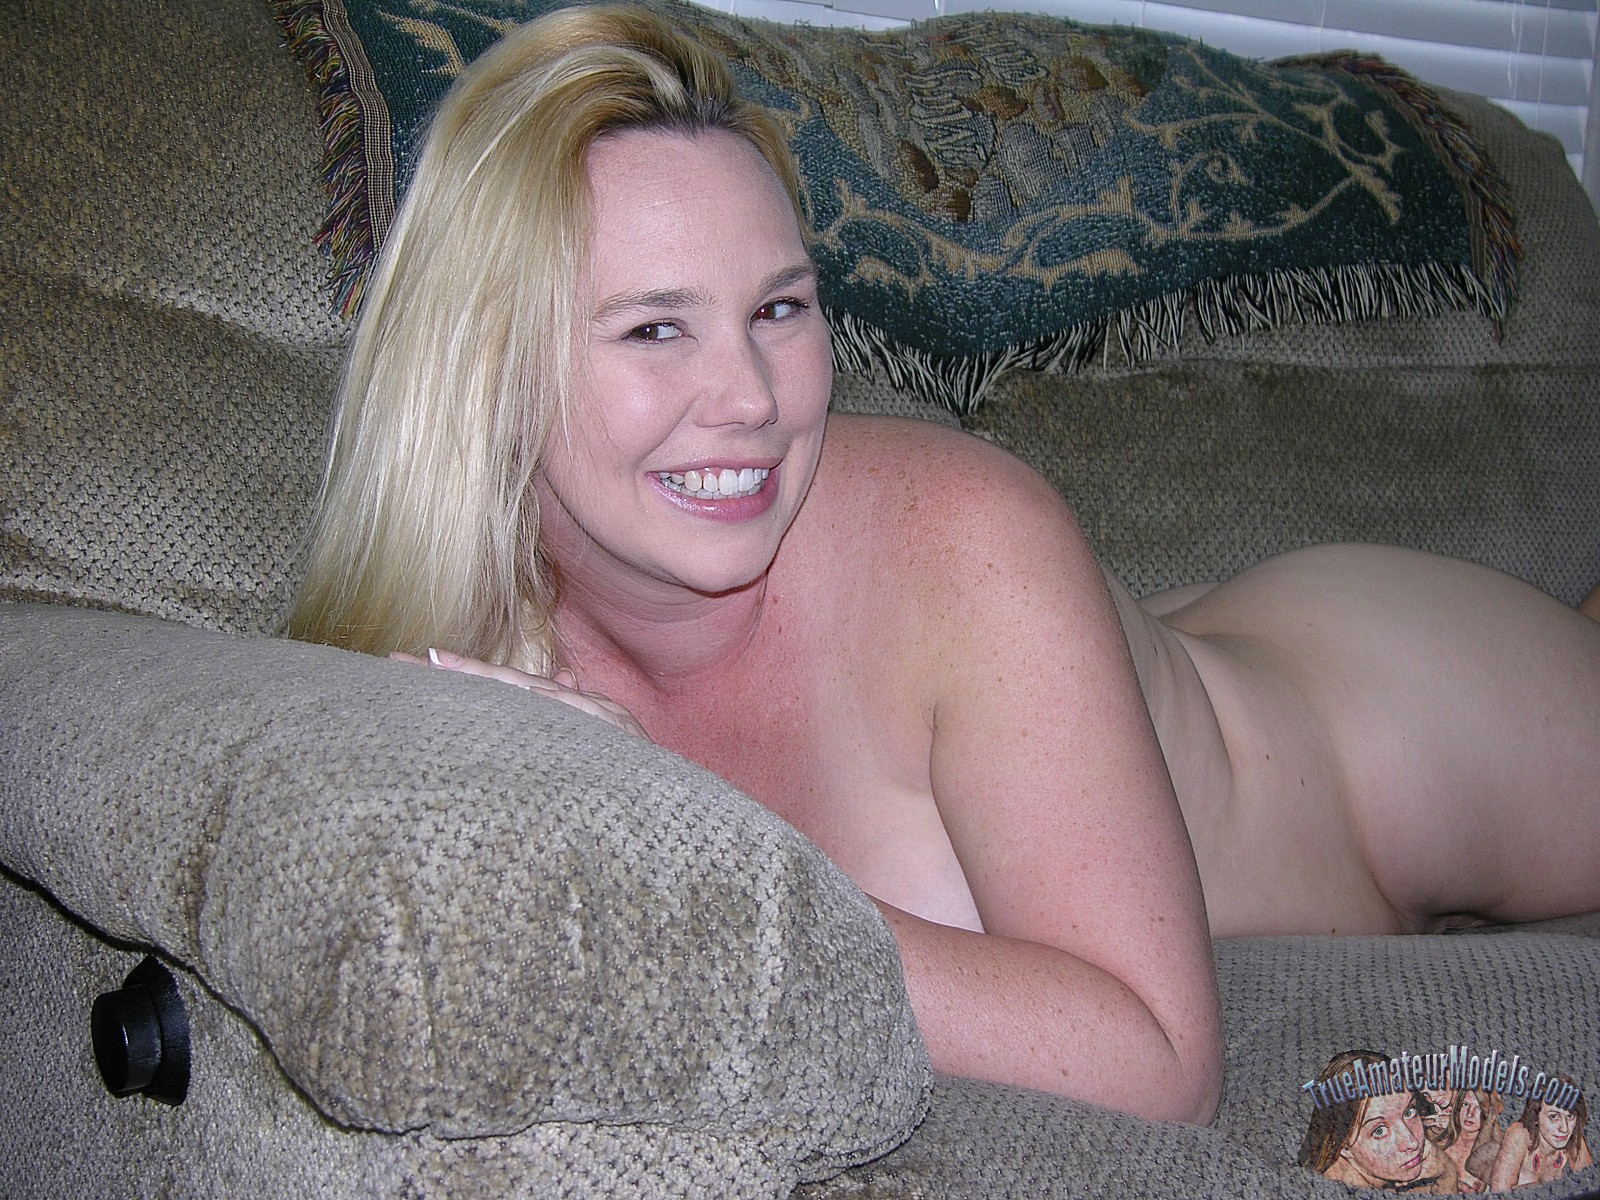 Very Amateur big breasted blondes naked